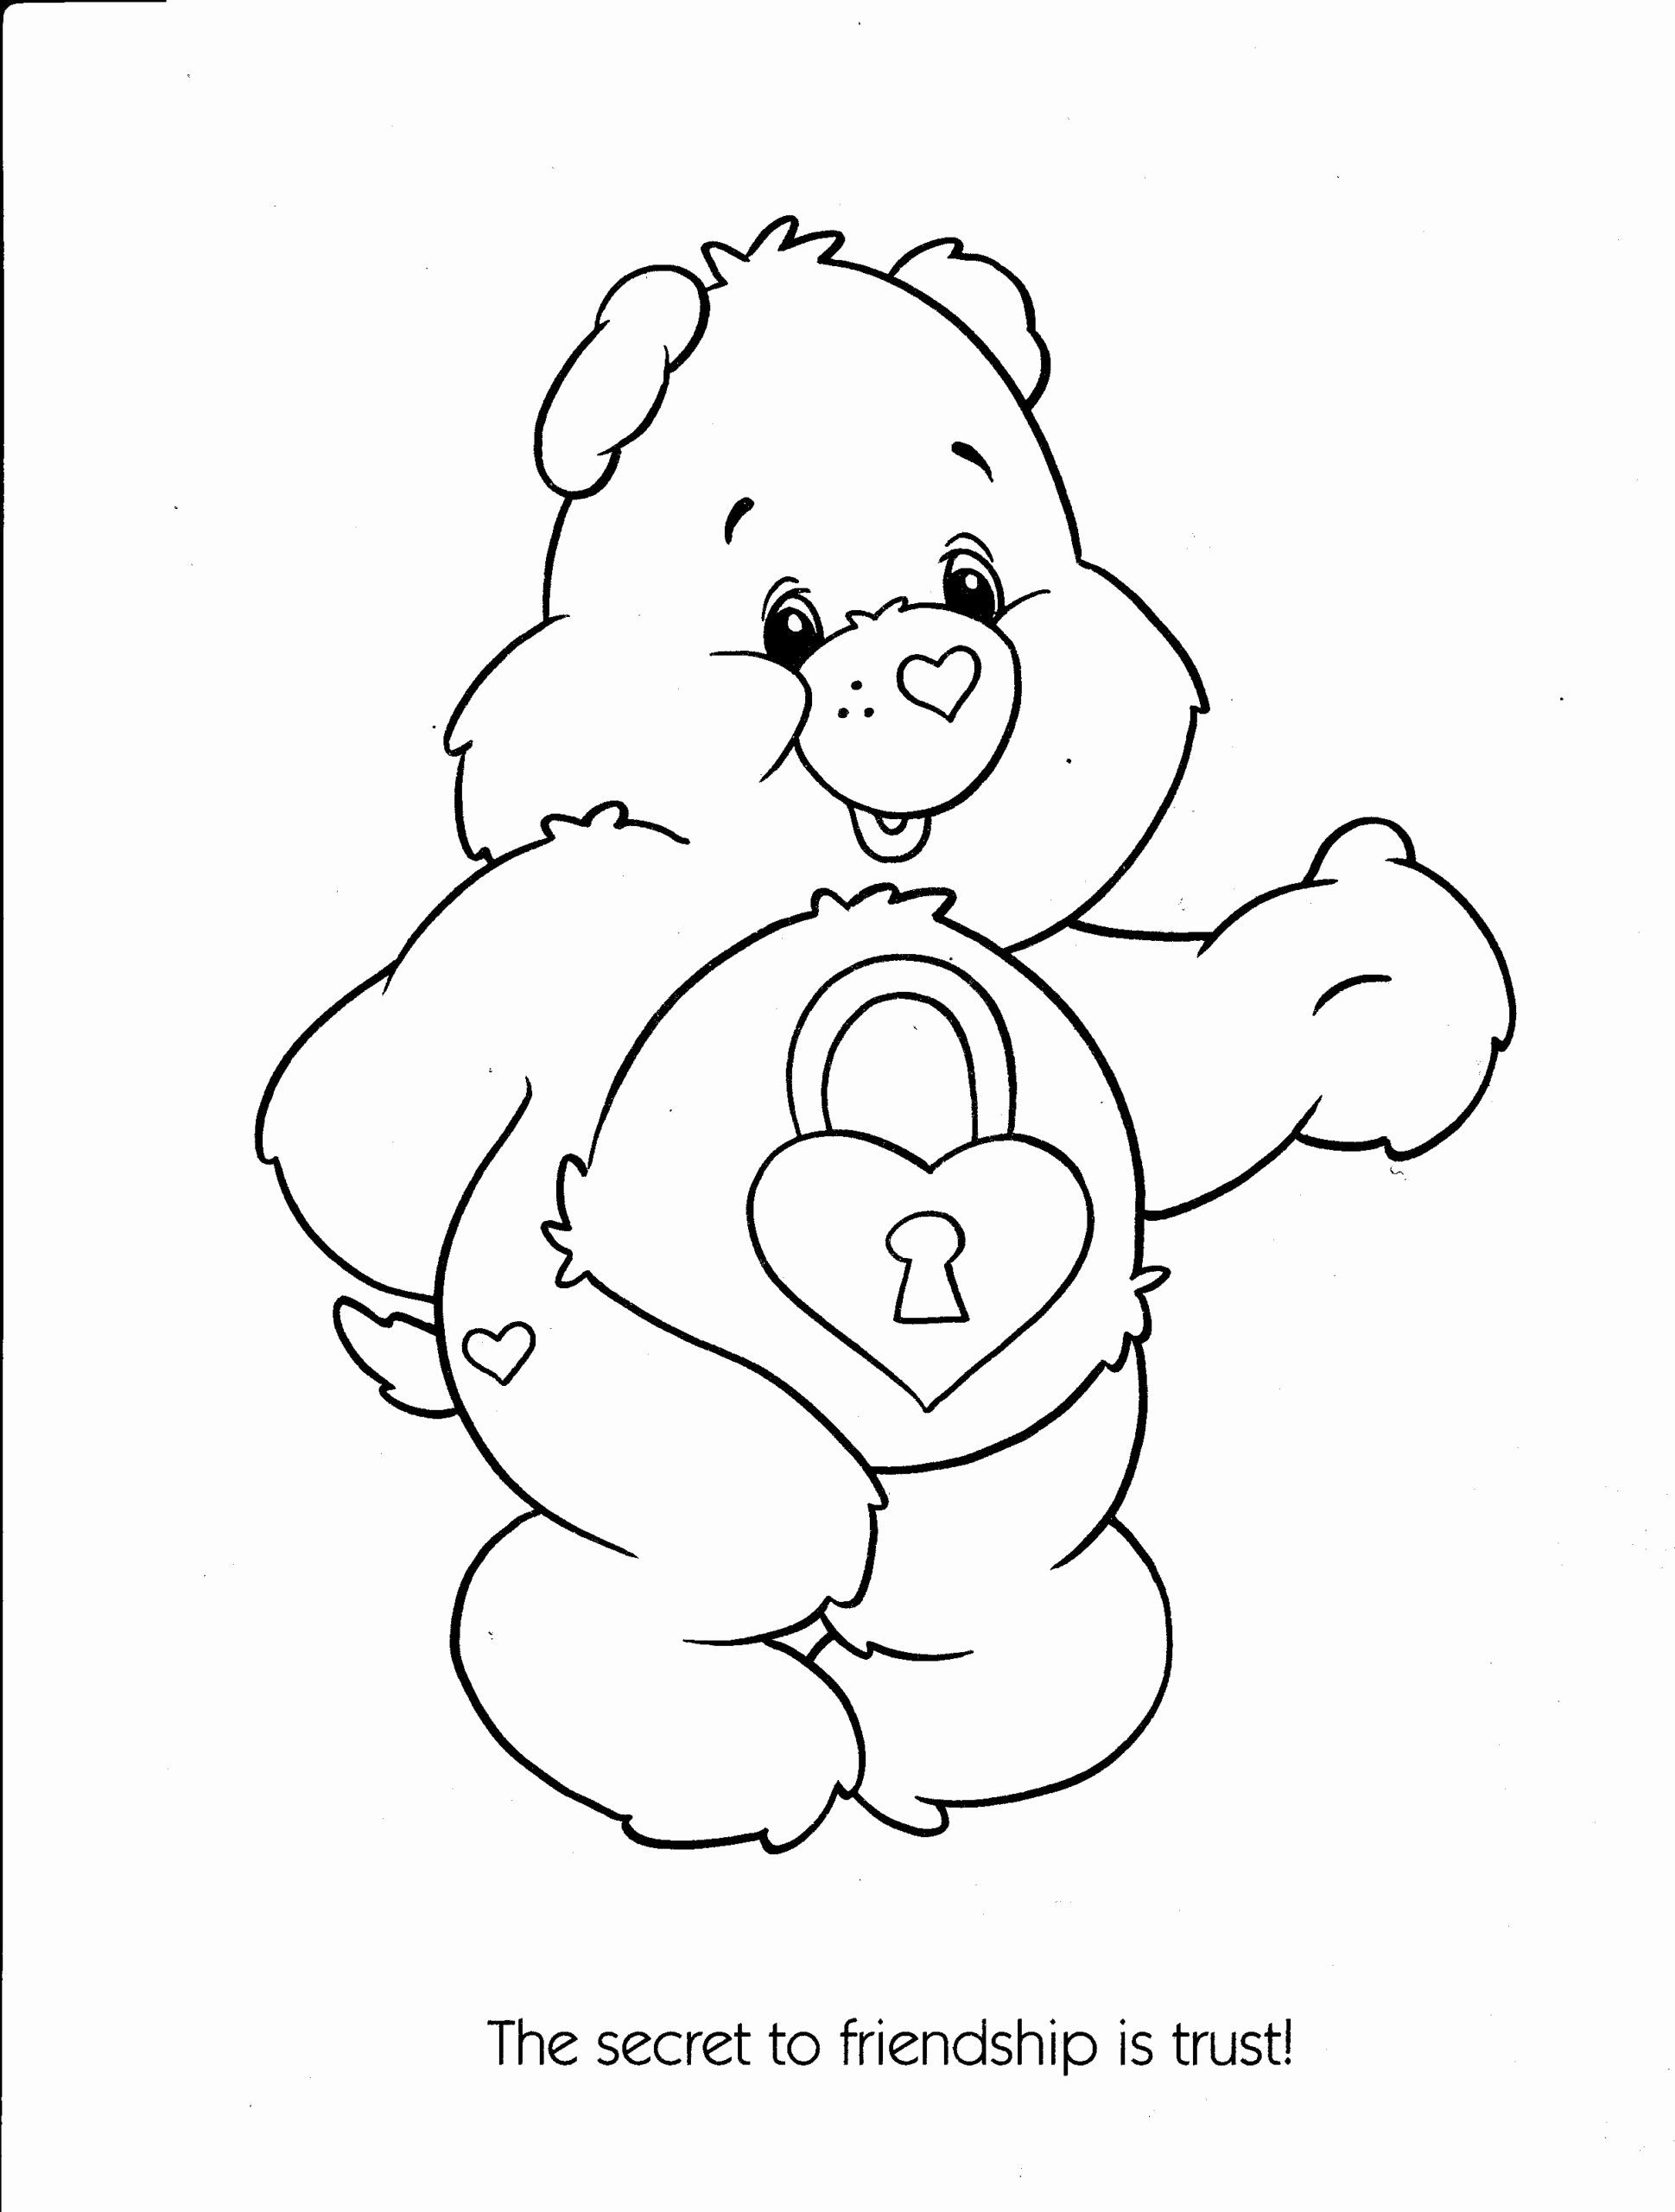 Christmas Bear Coloring Pages Inspirational Coloring Book Care Bear Covers Pdf Pages Christmas Sheets Bear Coloring Pages Coloring Pages Cat Coloring Book